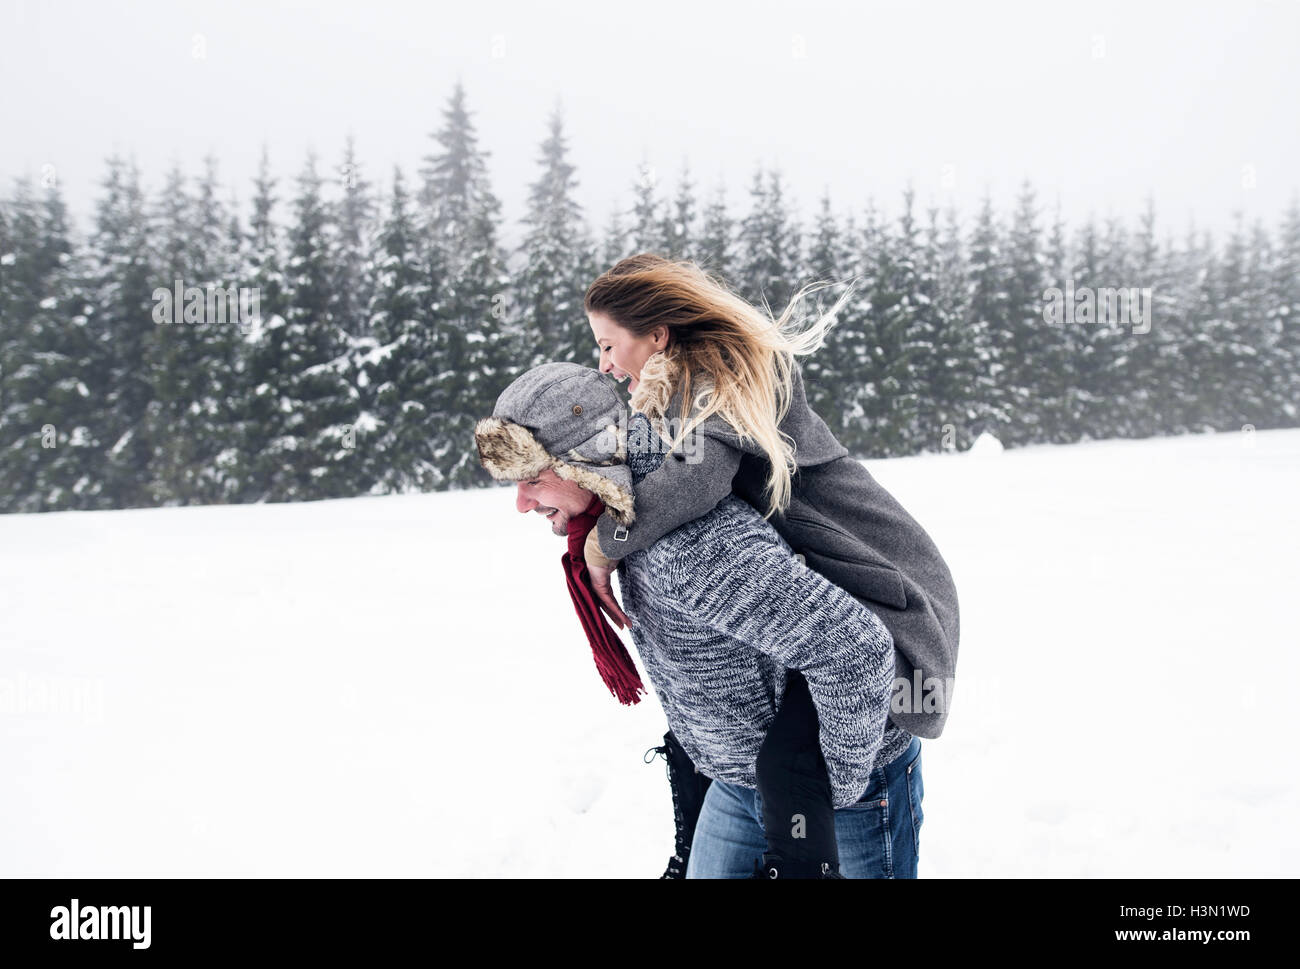 Couple in love, man giving woman piggyback. Winter nature. Stock Photo